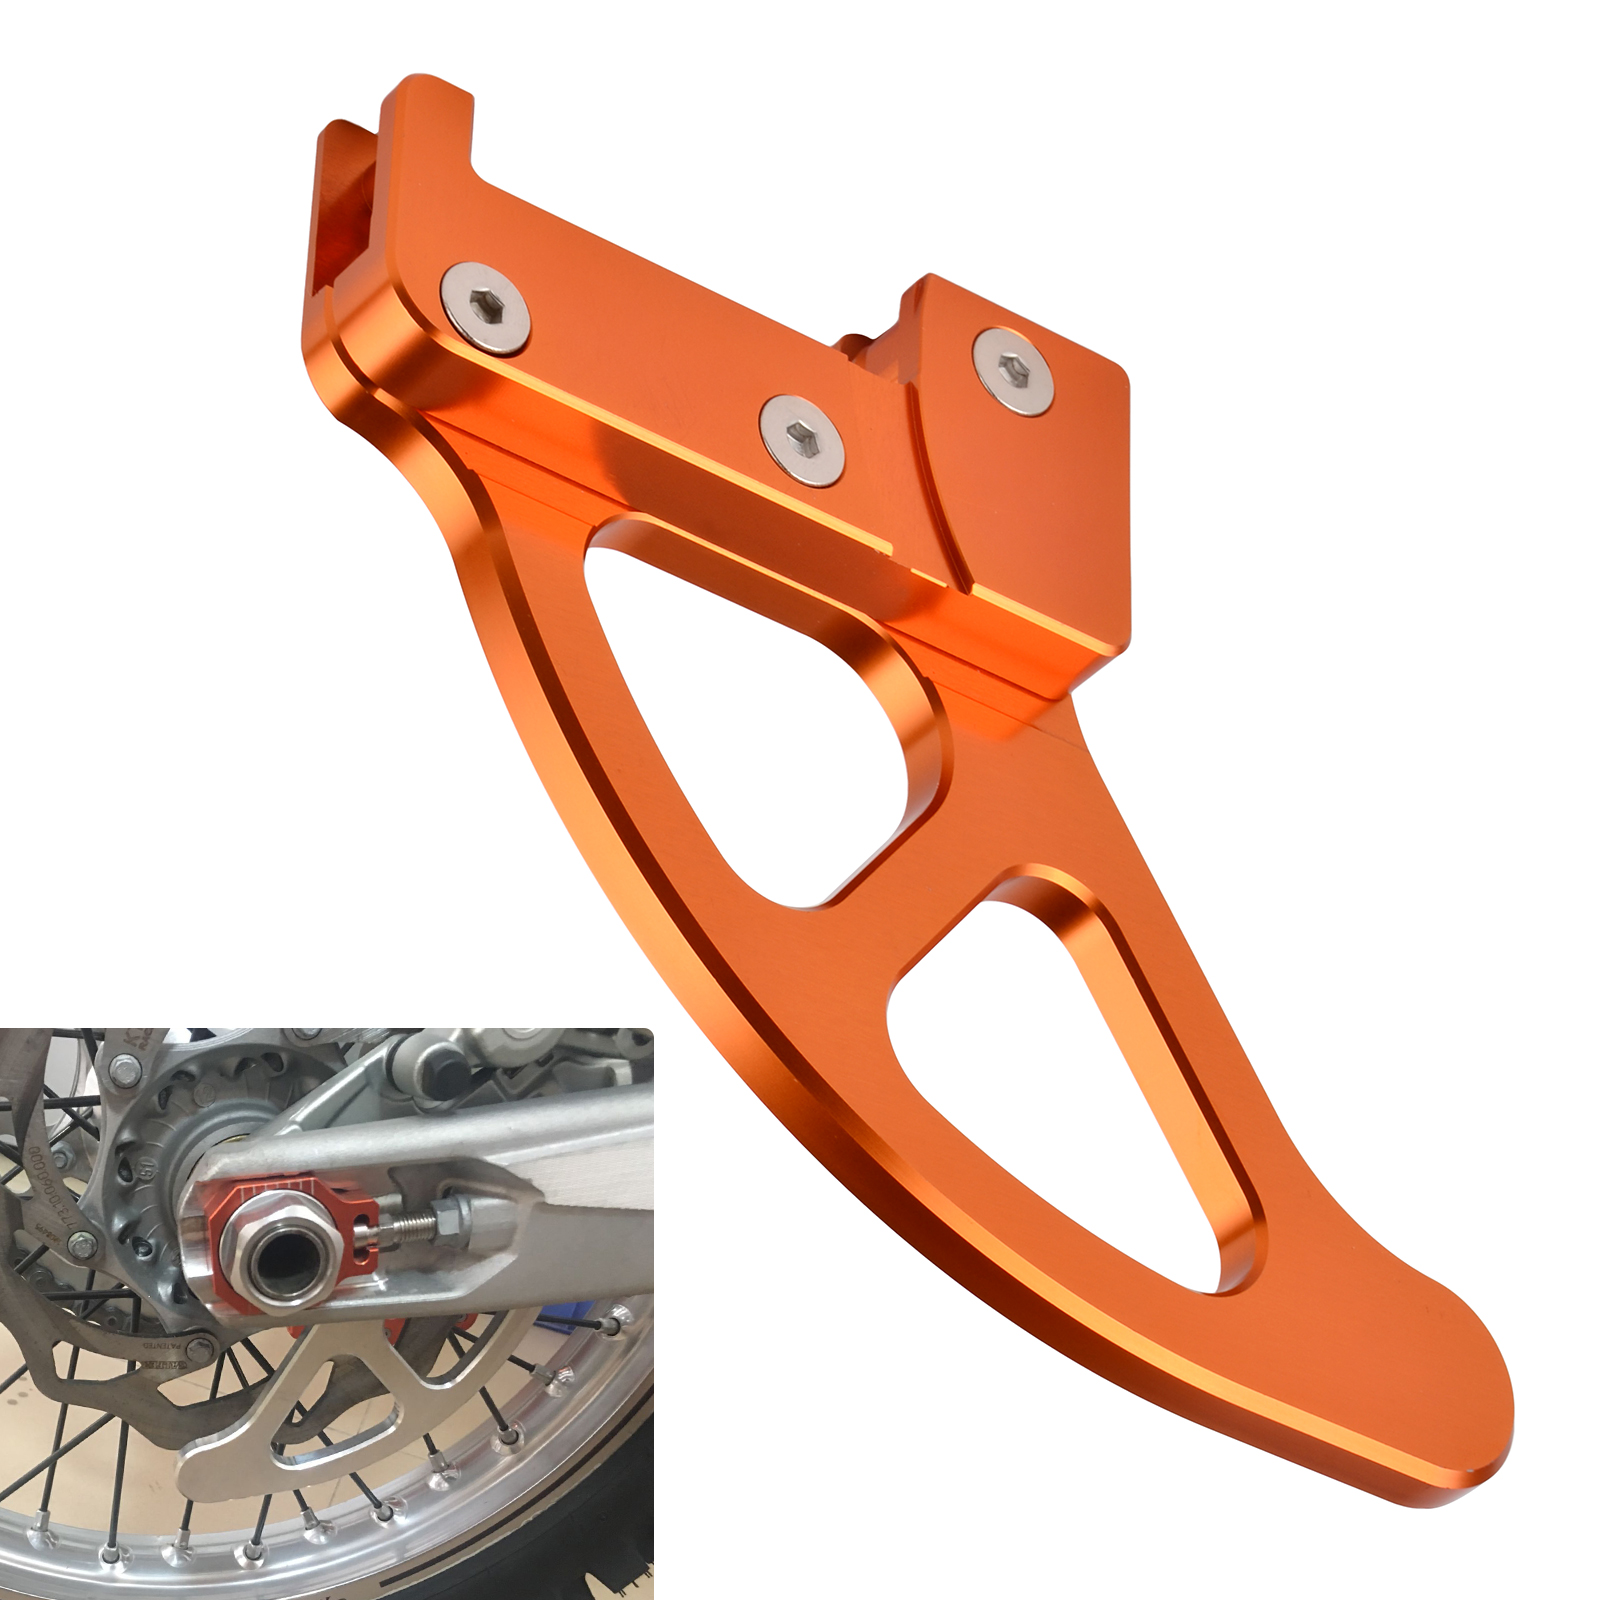 NICECNC Rear Brake Disc Guard For KTM 125 150 200 250 300 350 400 450 500 530 SX SX-F EXC EXC-F XC XC-W XC-F XCF-W SXF EXCF XCF цены